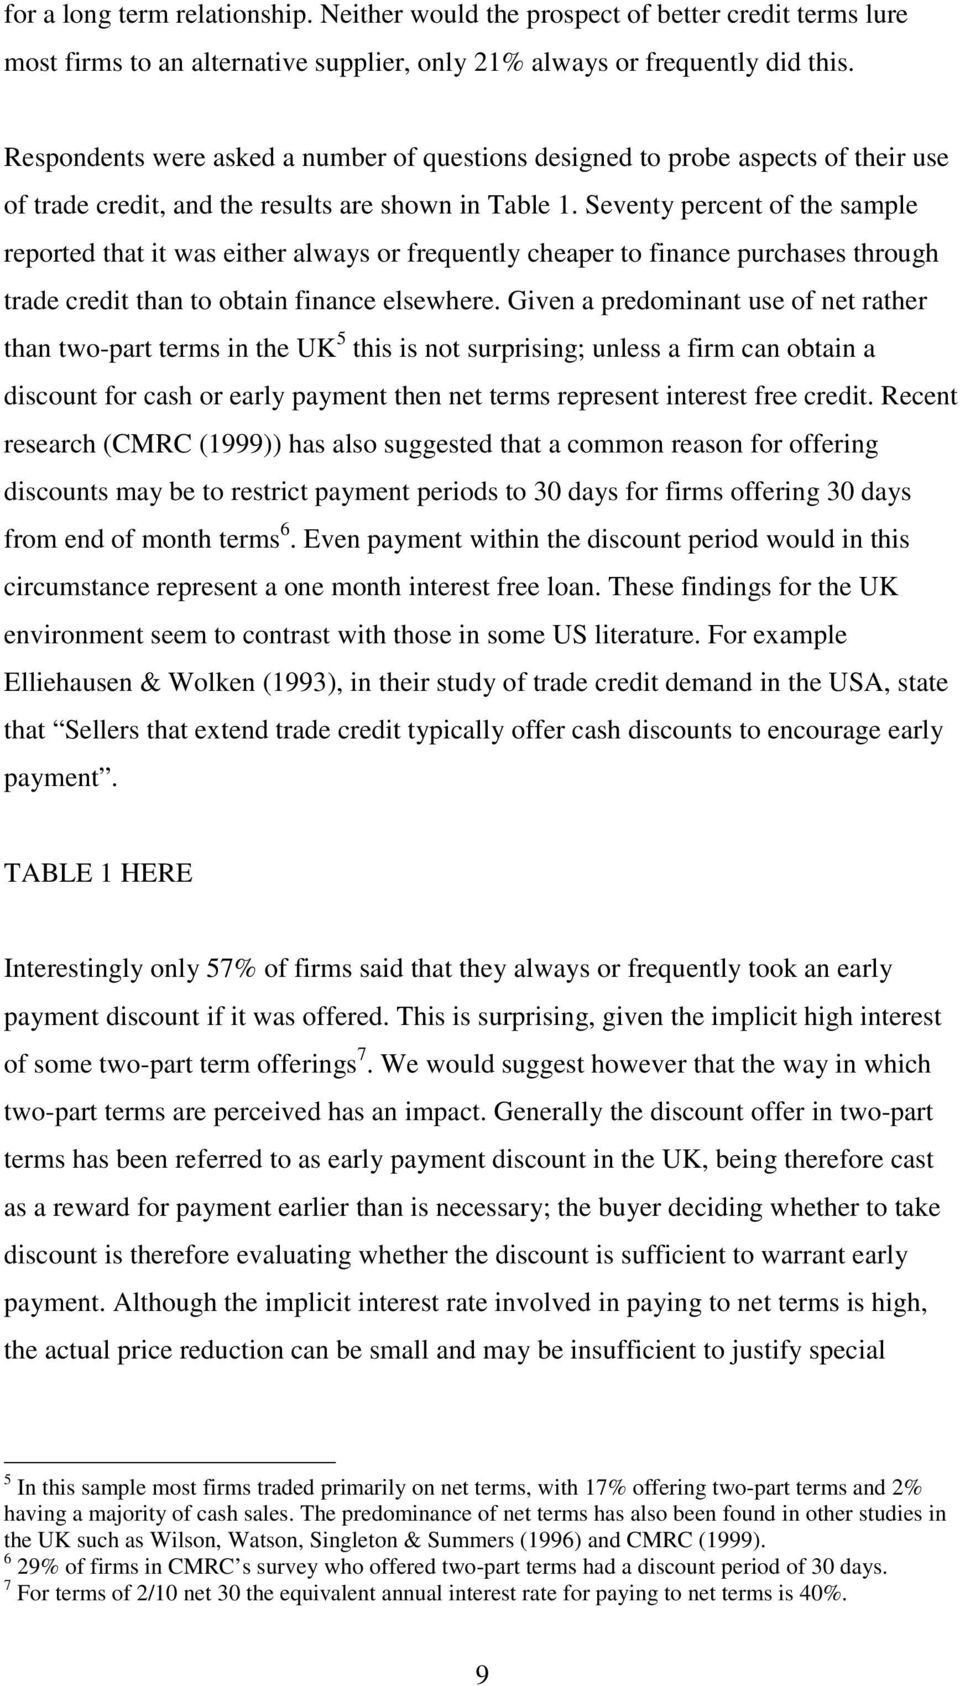 Seventy percent of the sample reported that it was either always or frequently cheaper to finance purchases through trade credit than to obtain finance elsewhere.